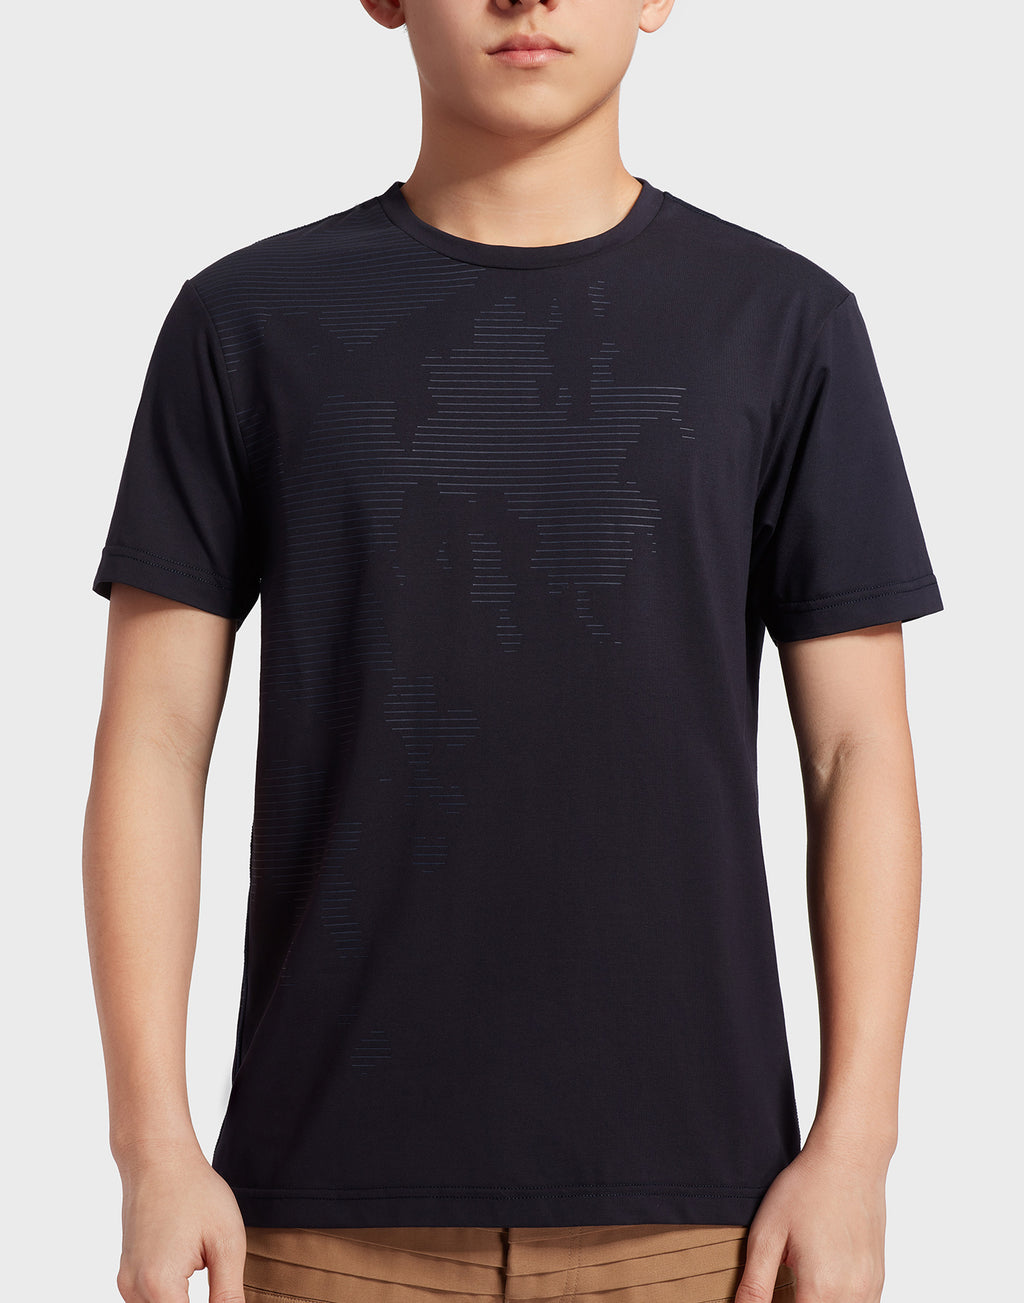 Navy Blue Printed Graphic T-Shirt